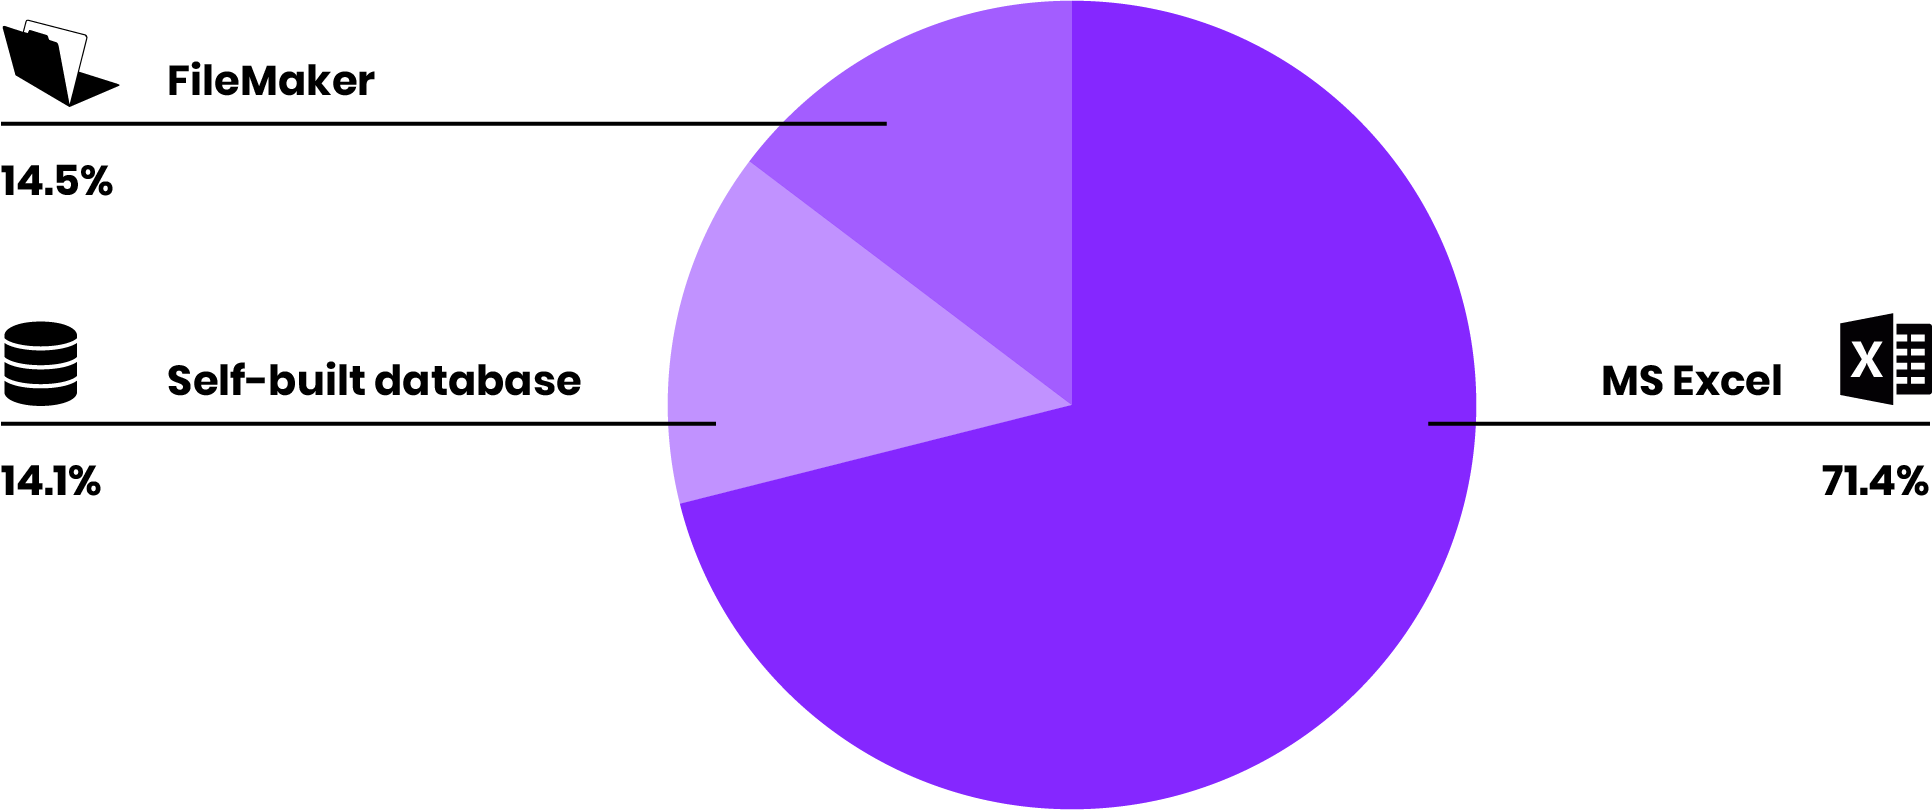 Eleven - Pie Chart.png